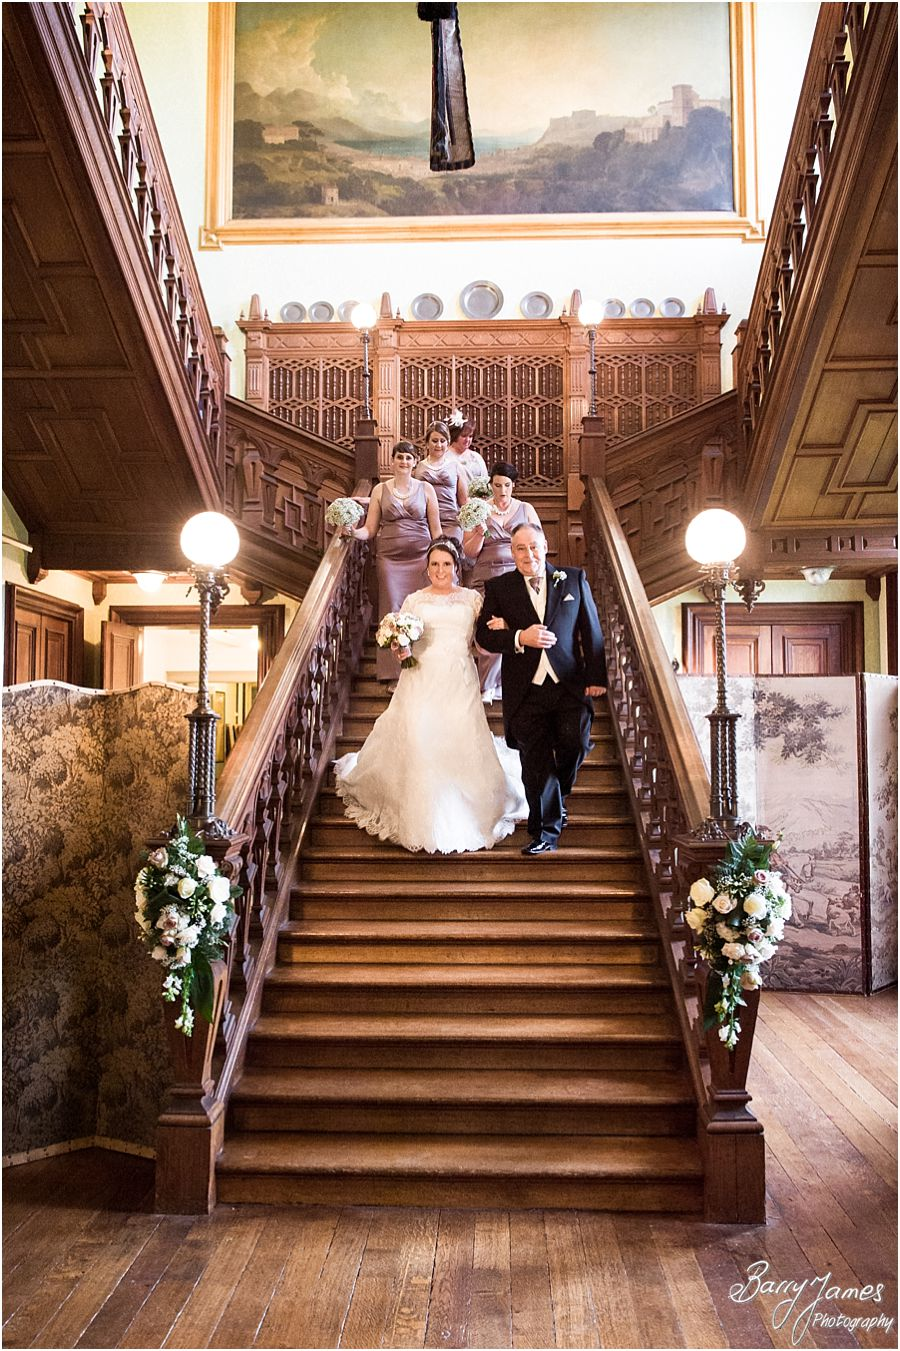 Unobtrusive natural wedding photographs of ceremony in Library at Sandon Hall in Stafford by Stafford Candid Wedding Photographer Barry James